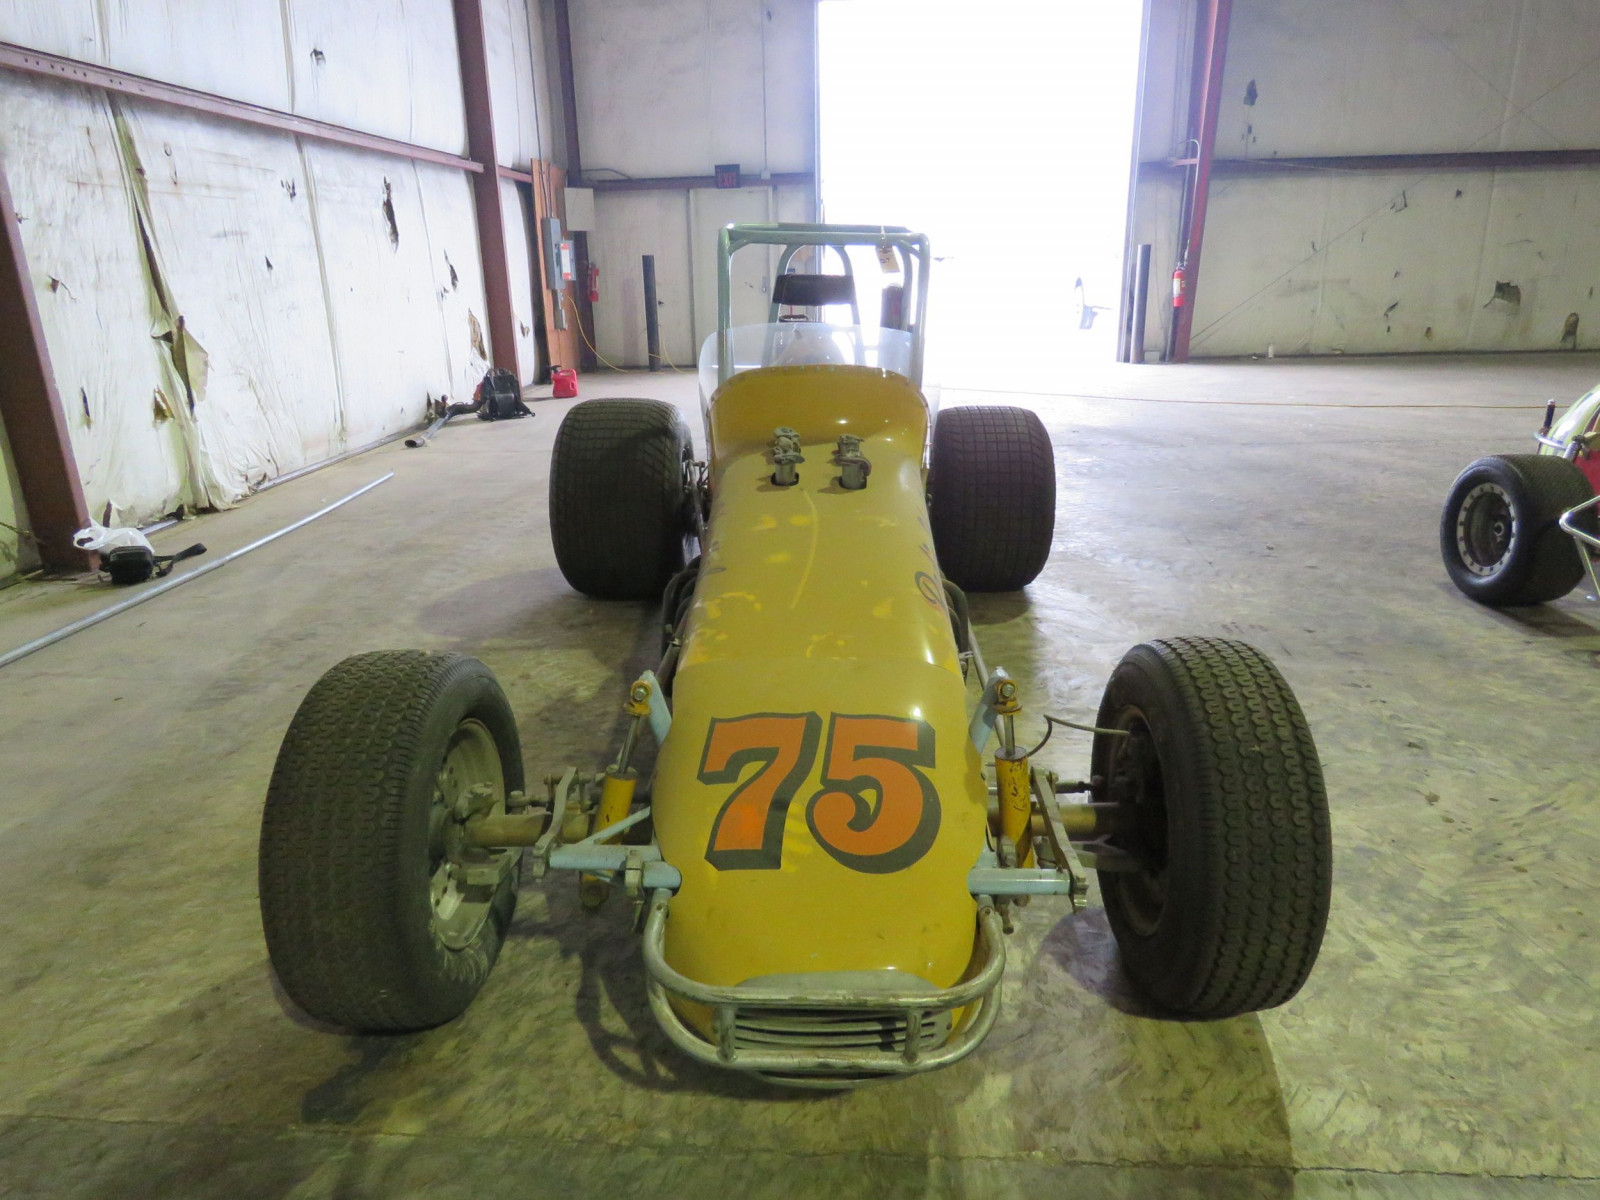 1972 fuel Injected Sprint Car - Image 9